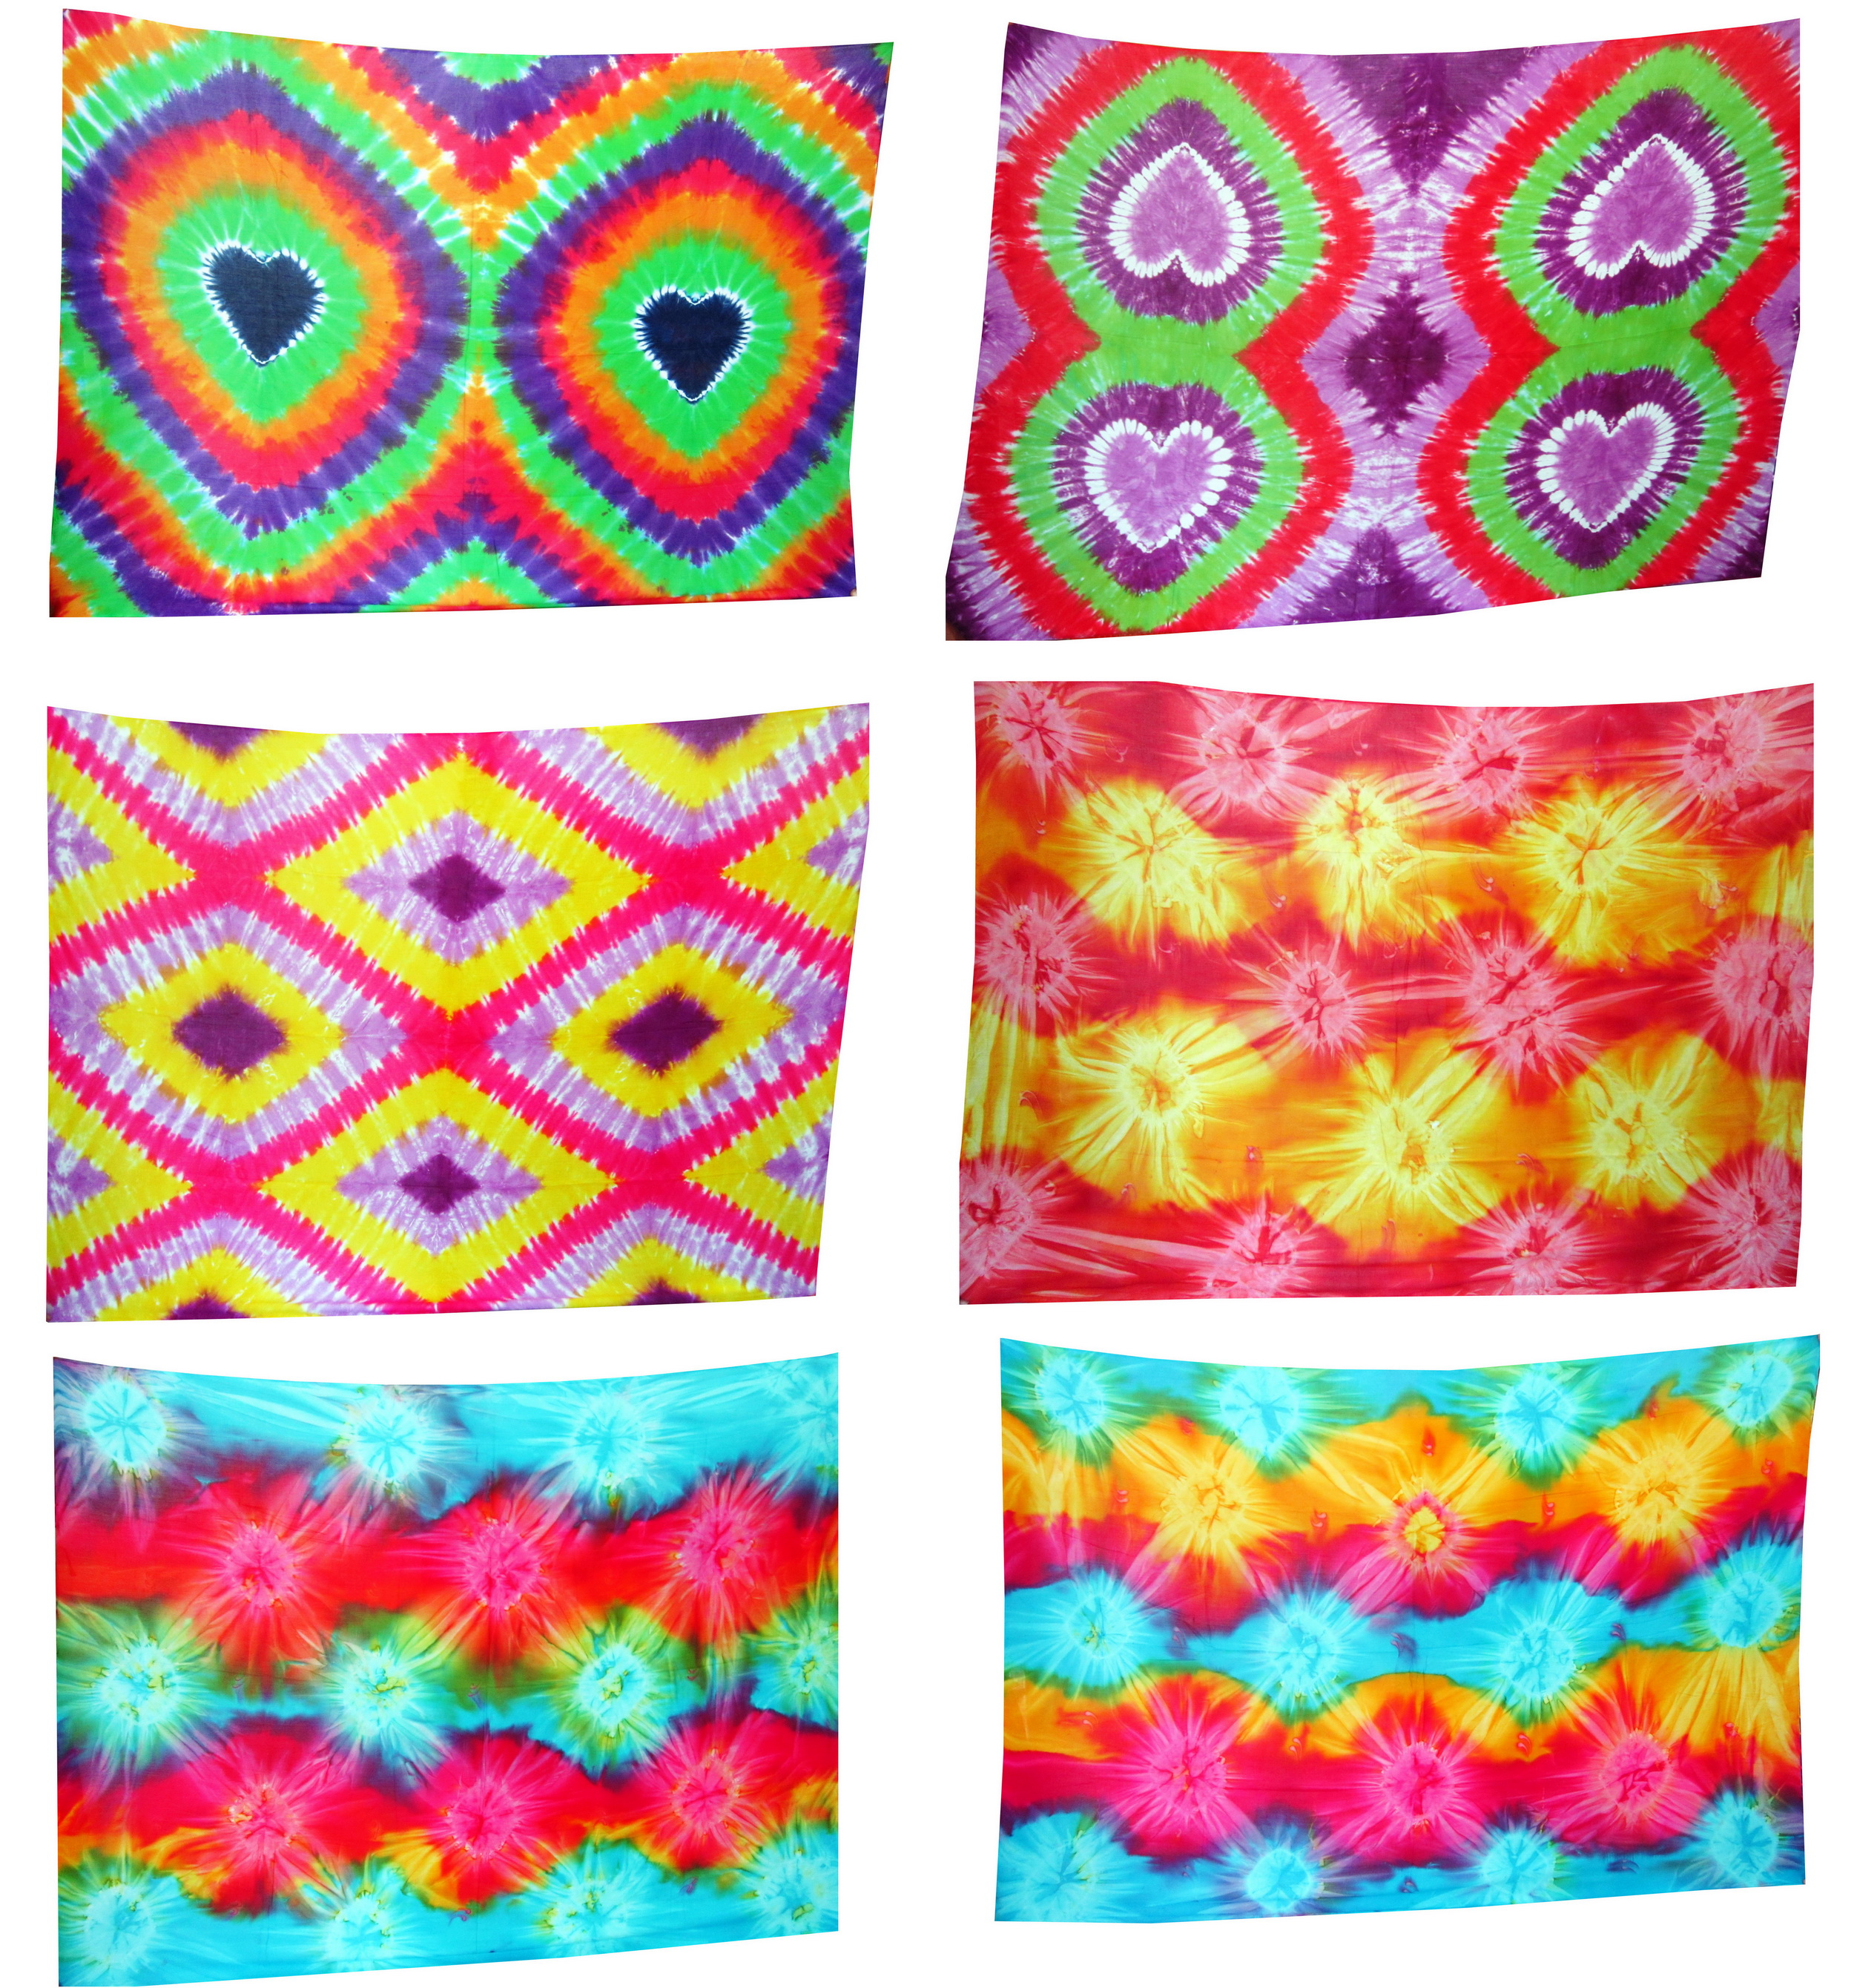 Bali Tie Dye - Assortment of 50 Sarongs